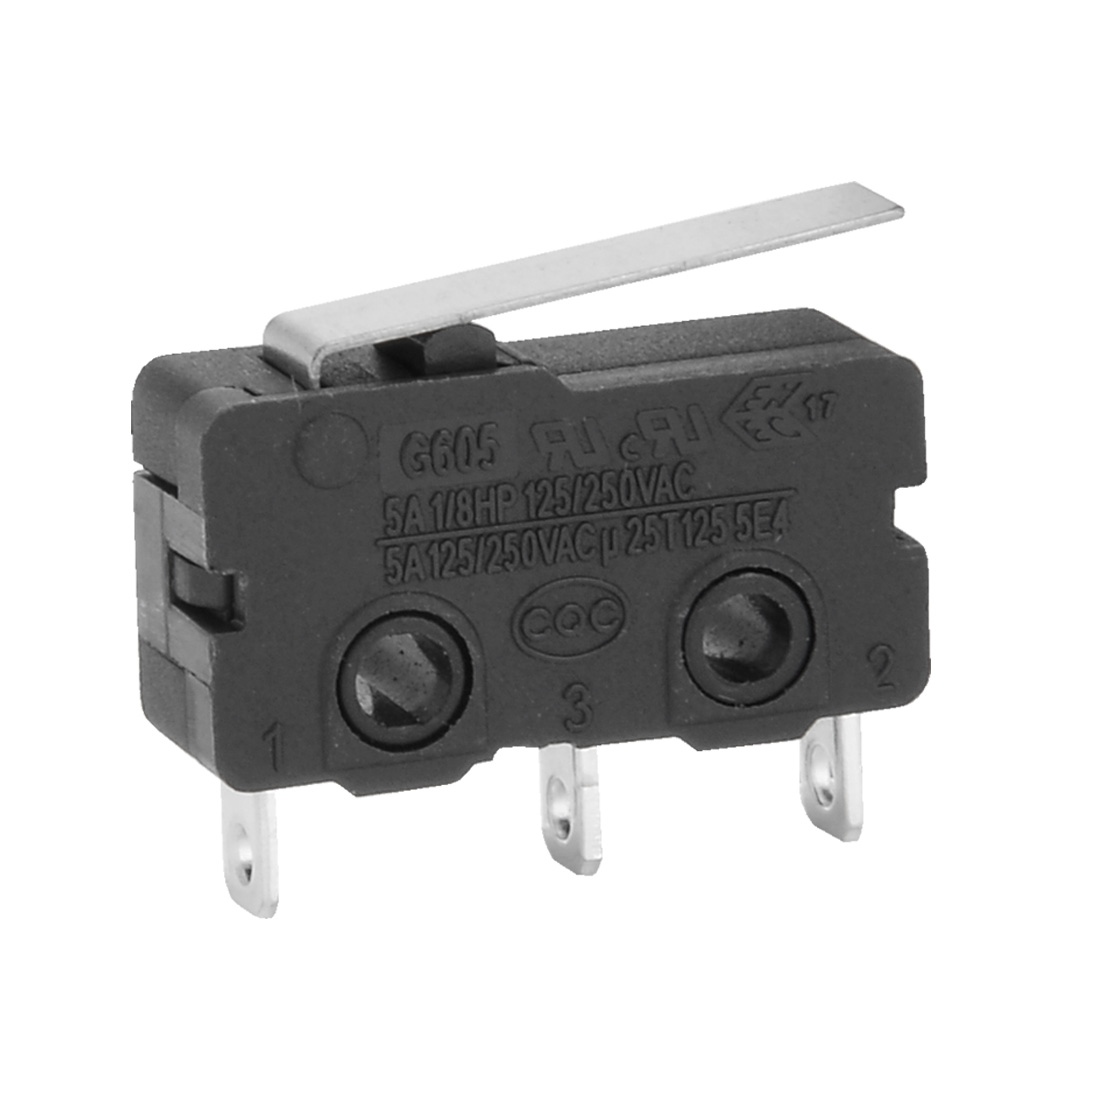 G605-150S01A 10 Pcs AC 250V 5A SPDT 1NO 1NC Short Straight Hinge Lever Mini Micro Switch